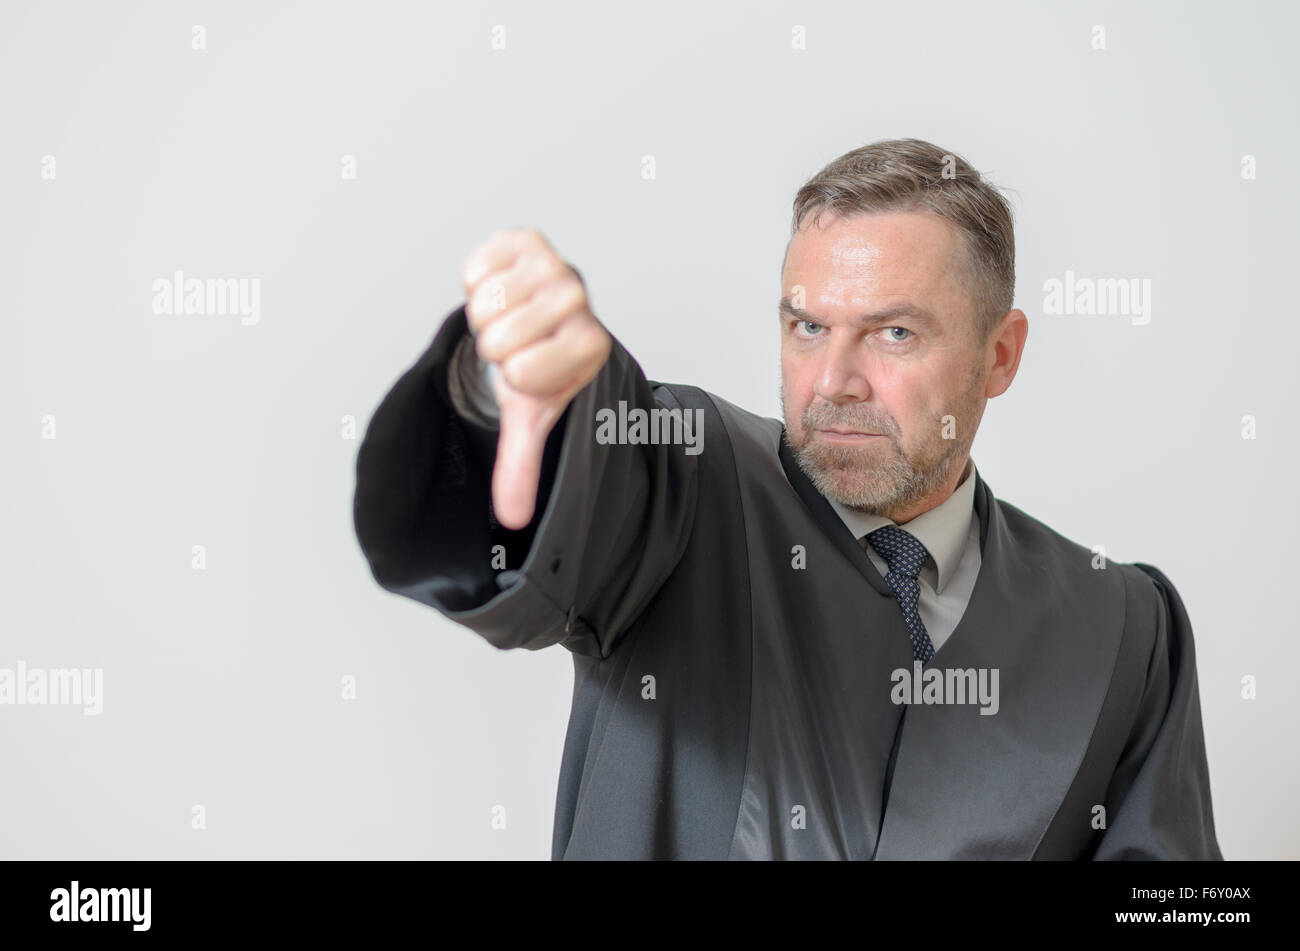 Businessman giving a thumbs down gesture to show he disagrees, a failure or voting down on something, with a stern - Stock Image